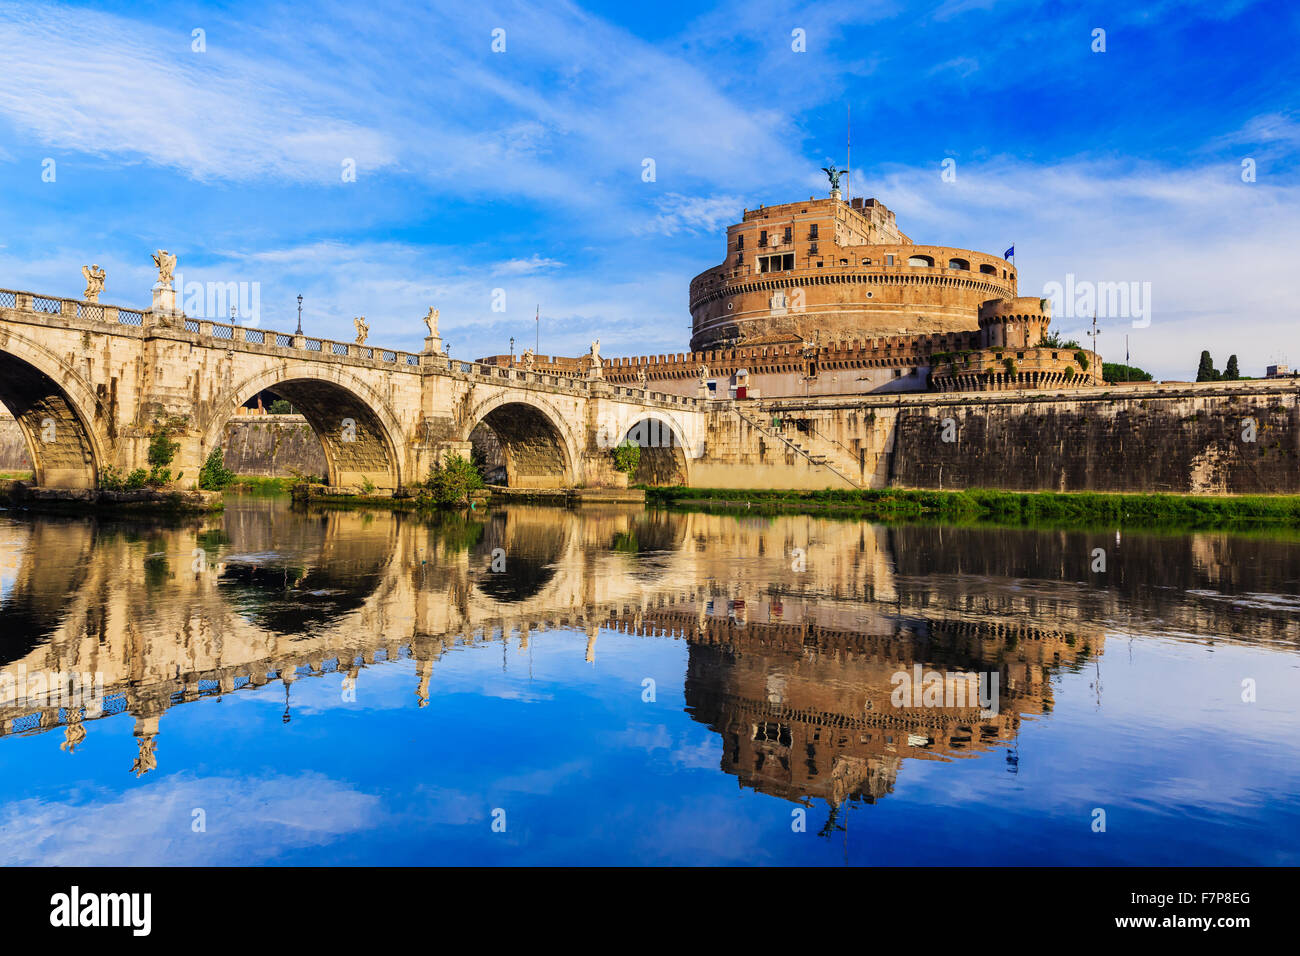 Rome, Italy. Castle Sant Angelo, bridge and Tiber river. - Stock Image